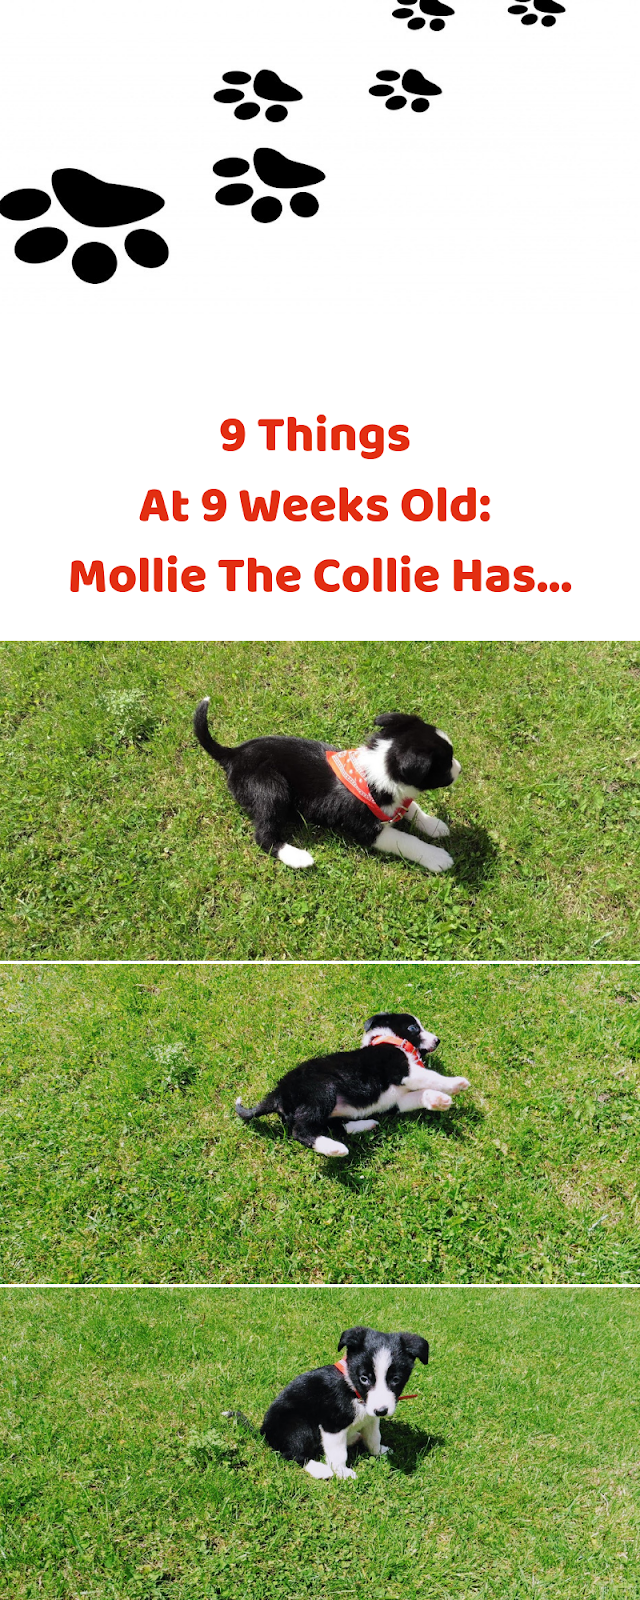 9 Things At 9 Weeks Old: Mollie The Collie Has